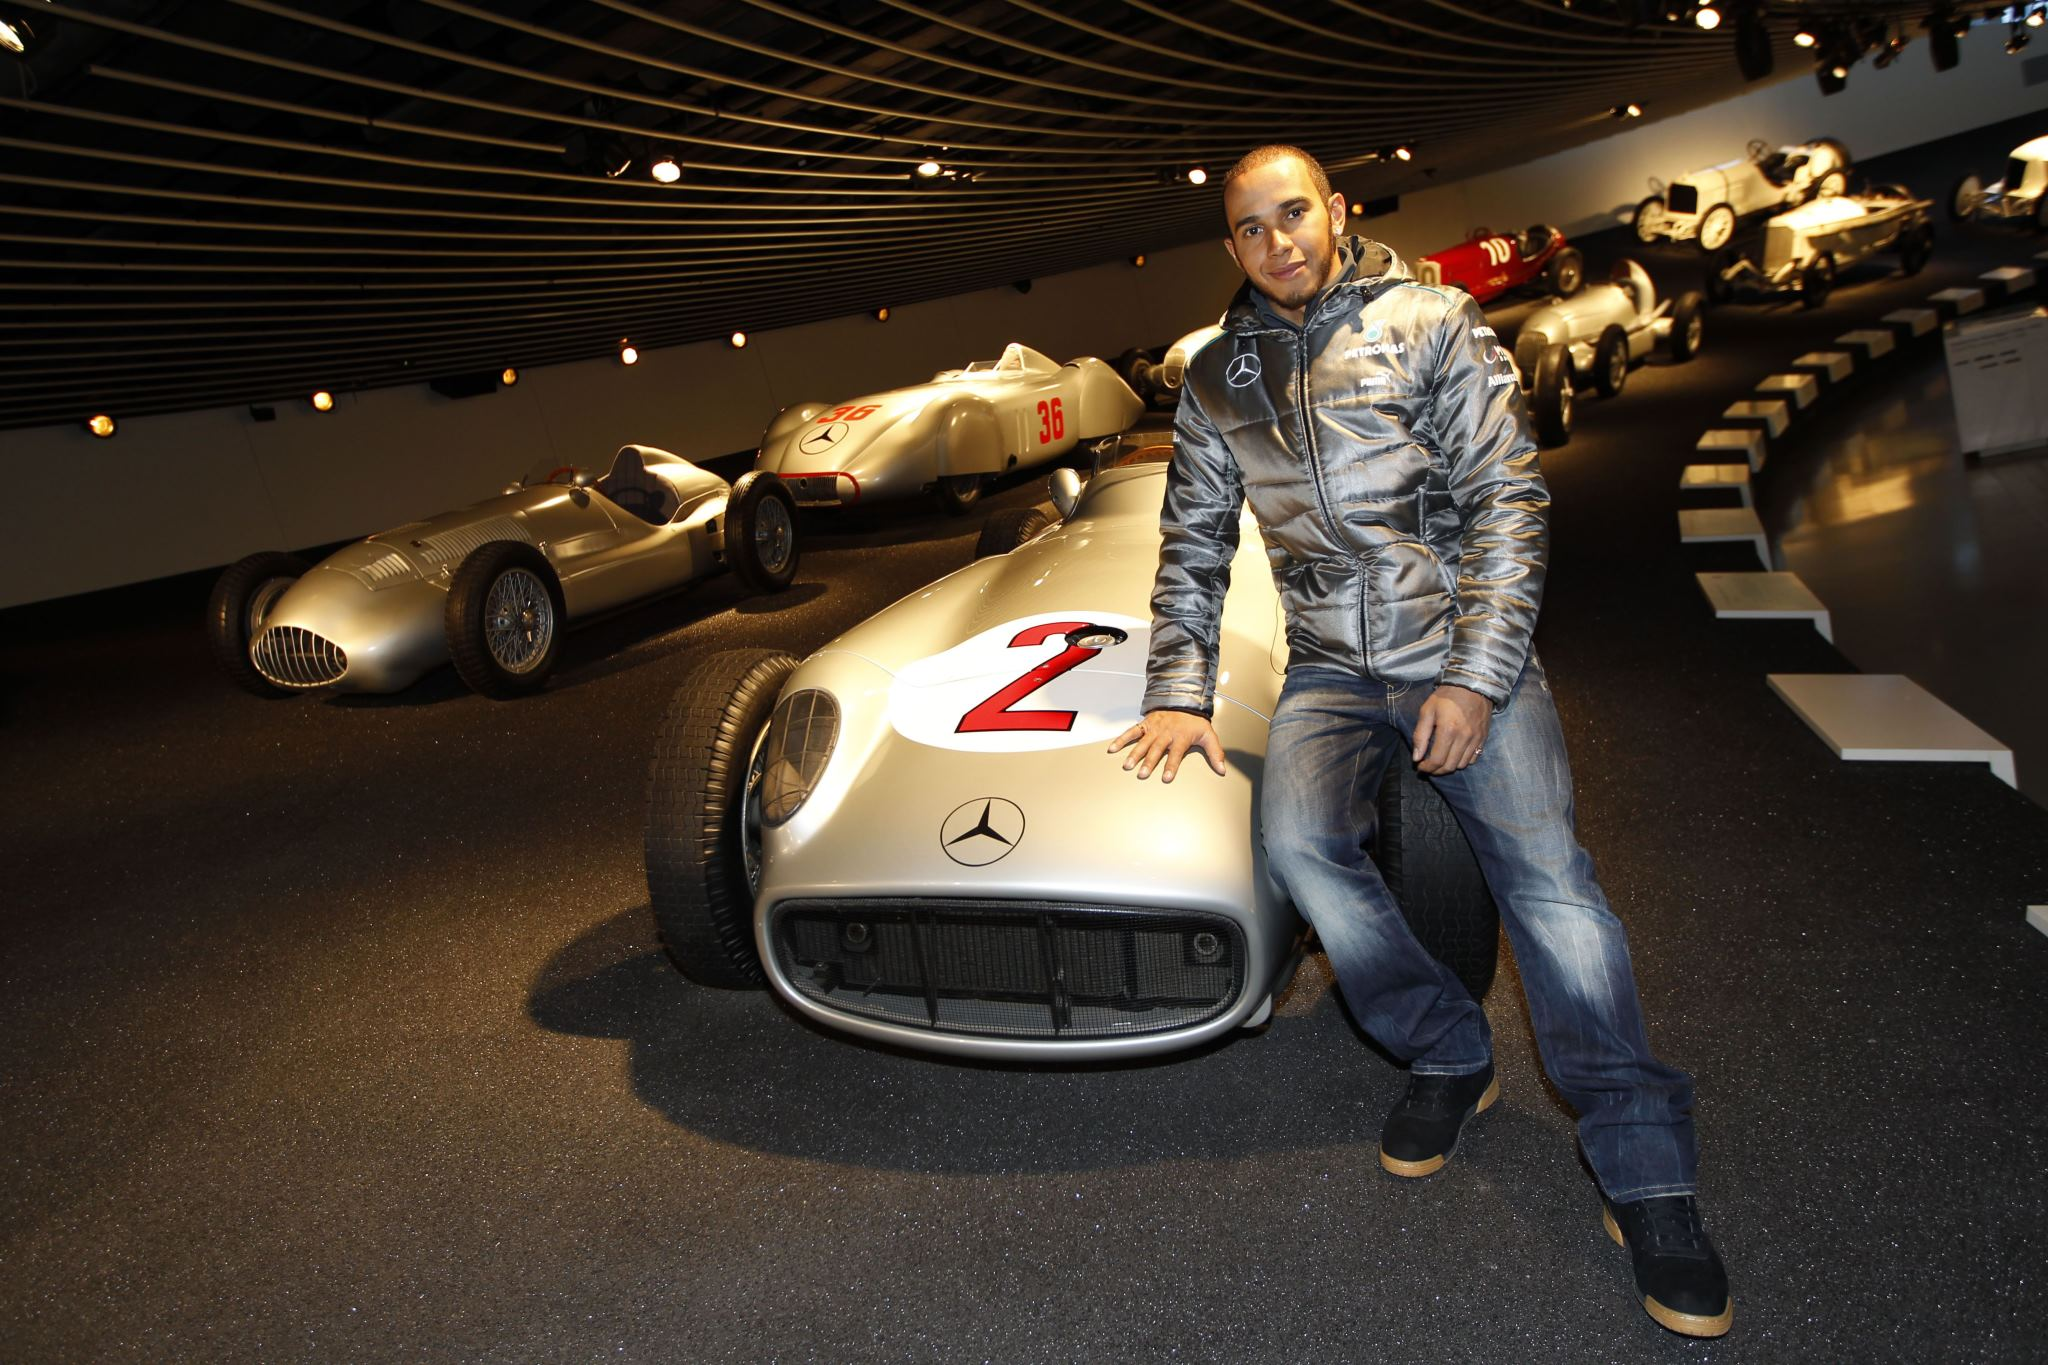 Lewis Hamilton Makes First Appearance as a Silver Arrow Driver 4